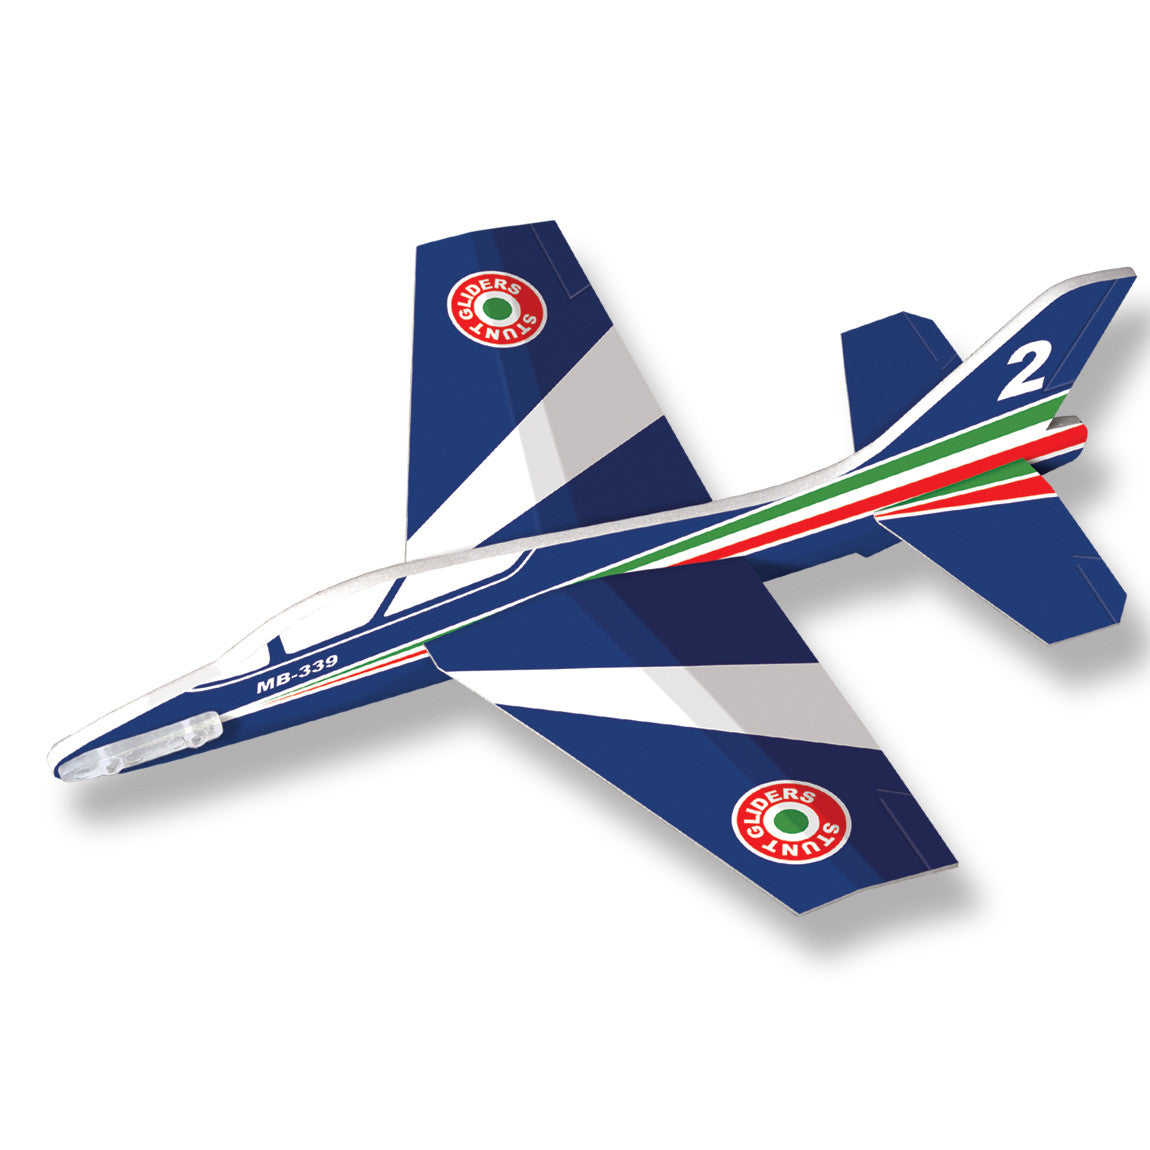 Be Amazing Toys MB-339 Stunt Glider